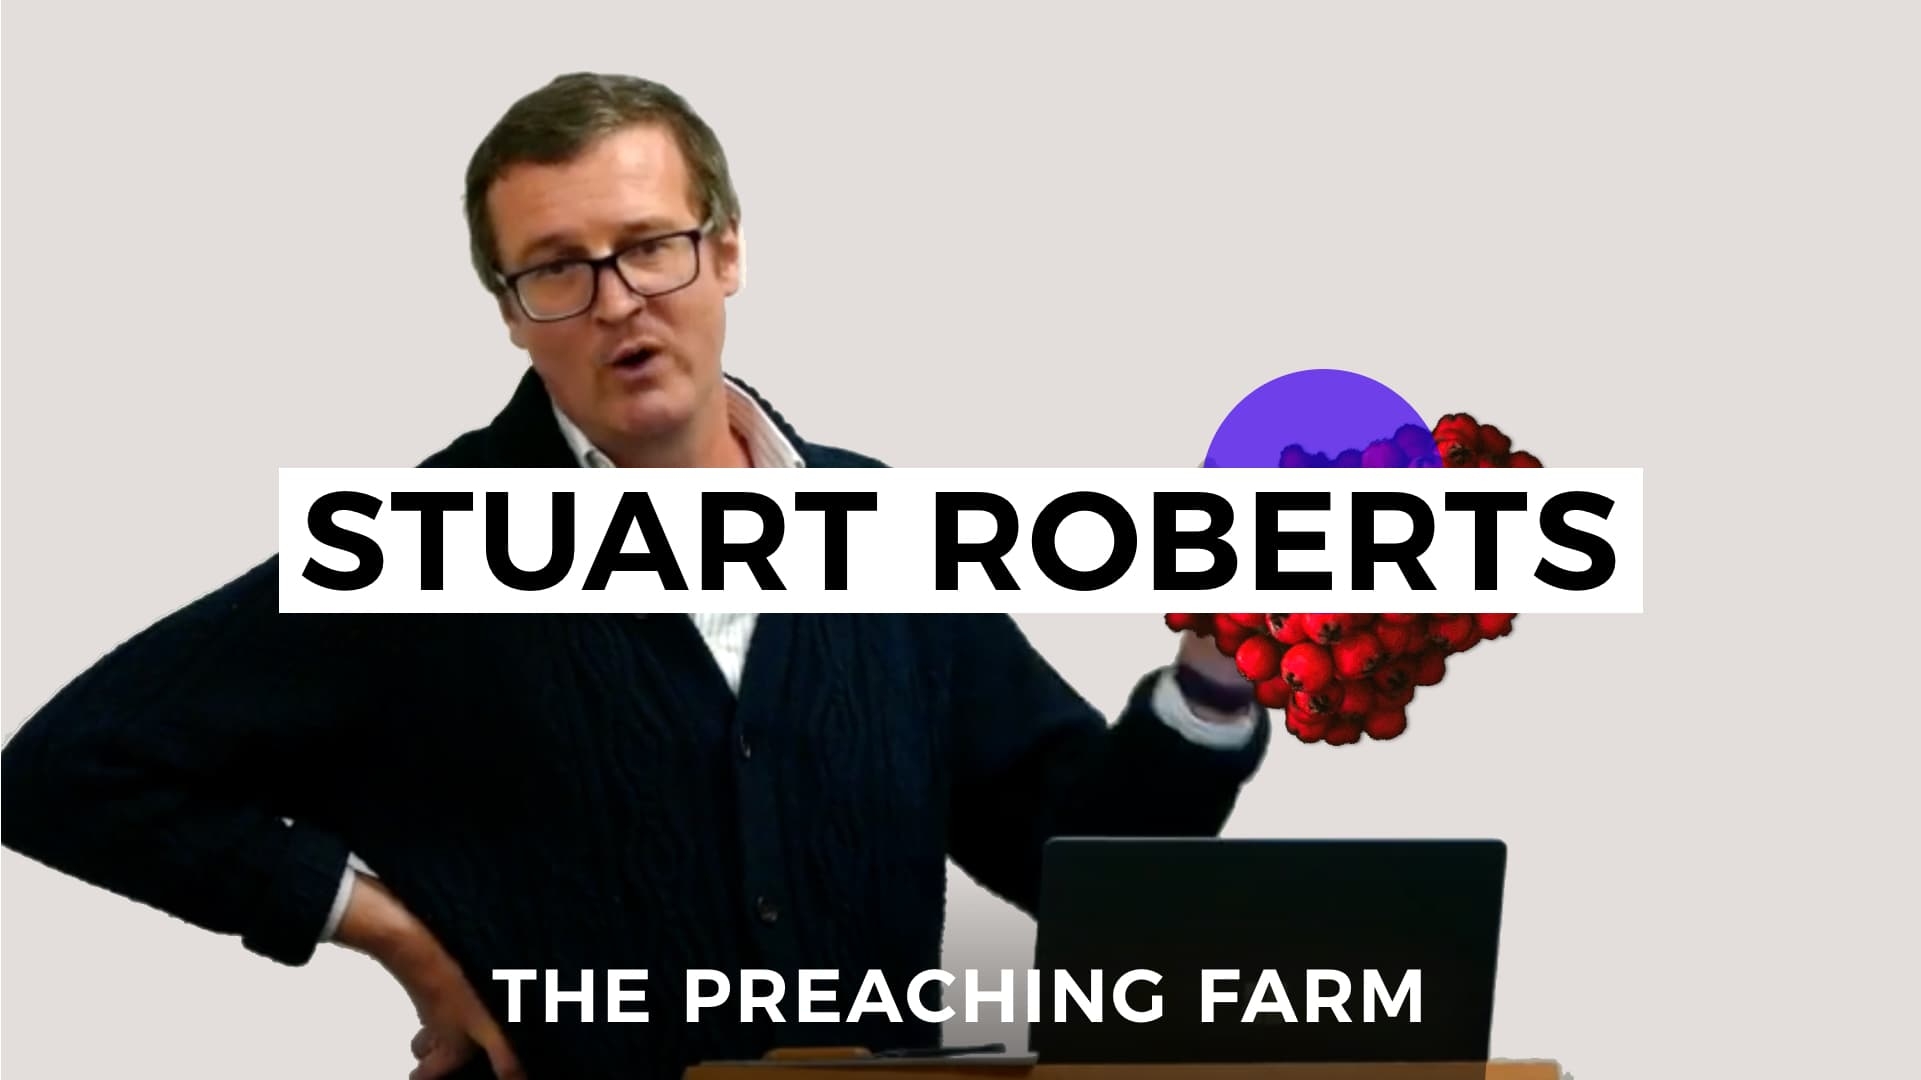 The Preaching Farm 2: Stuart Roberts